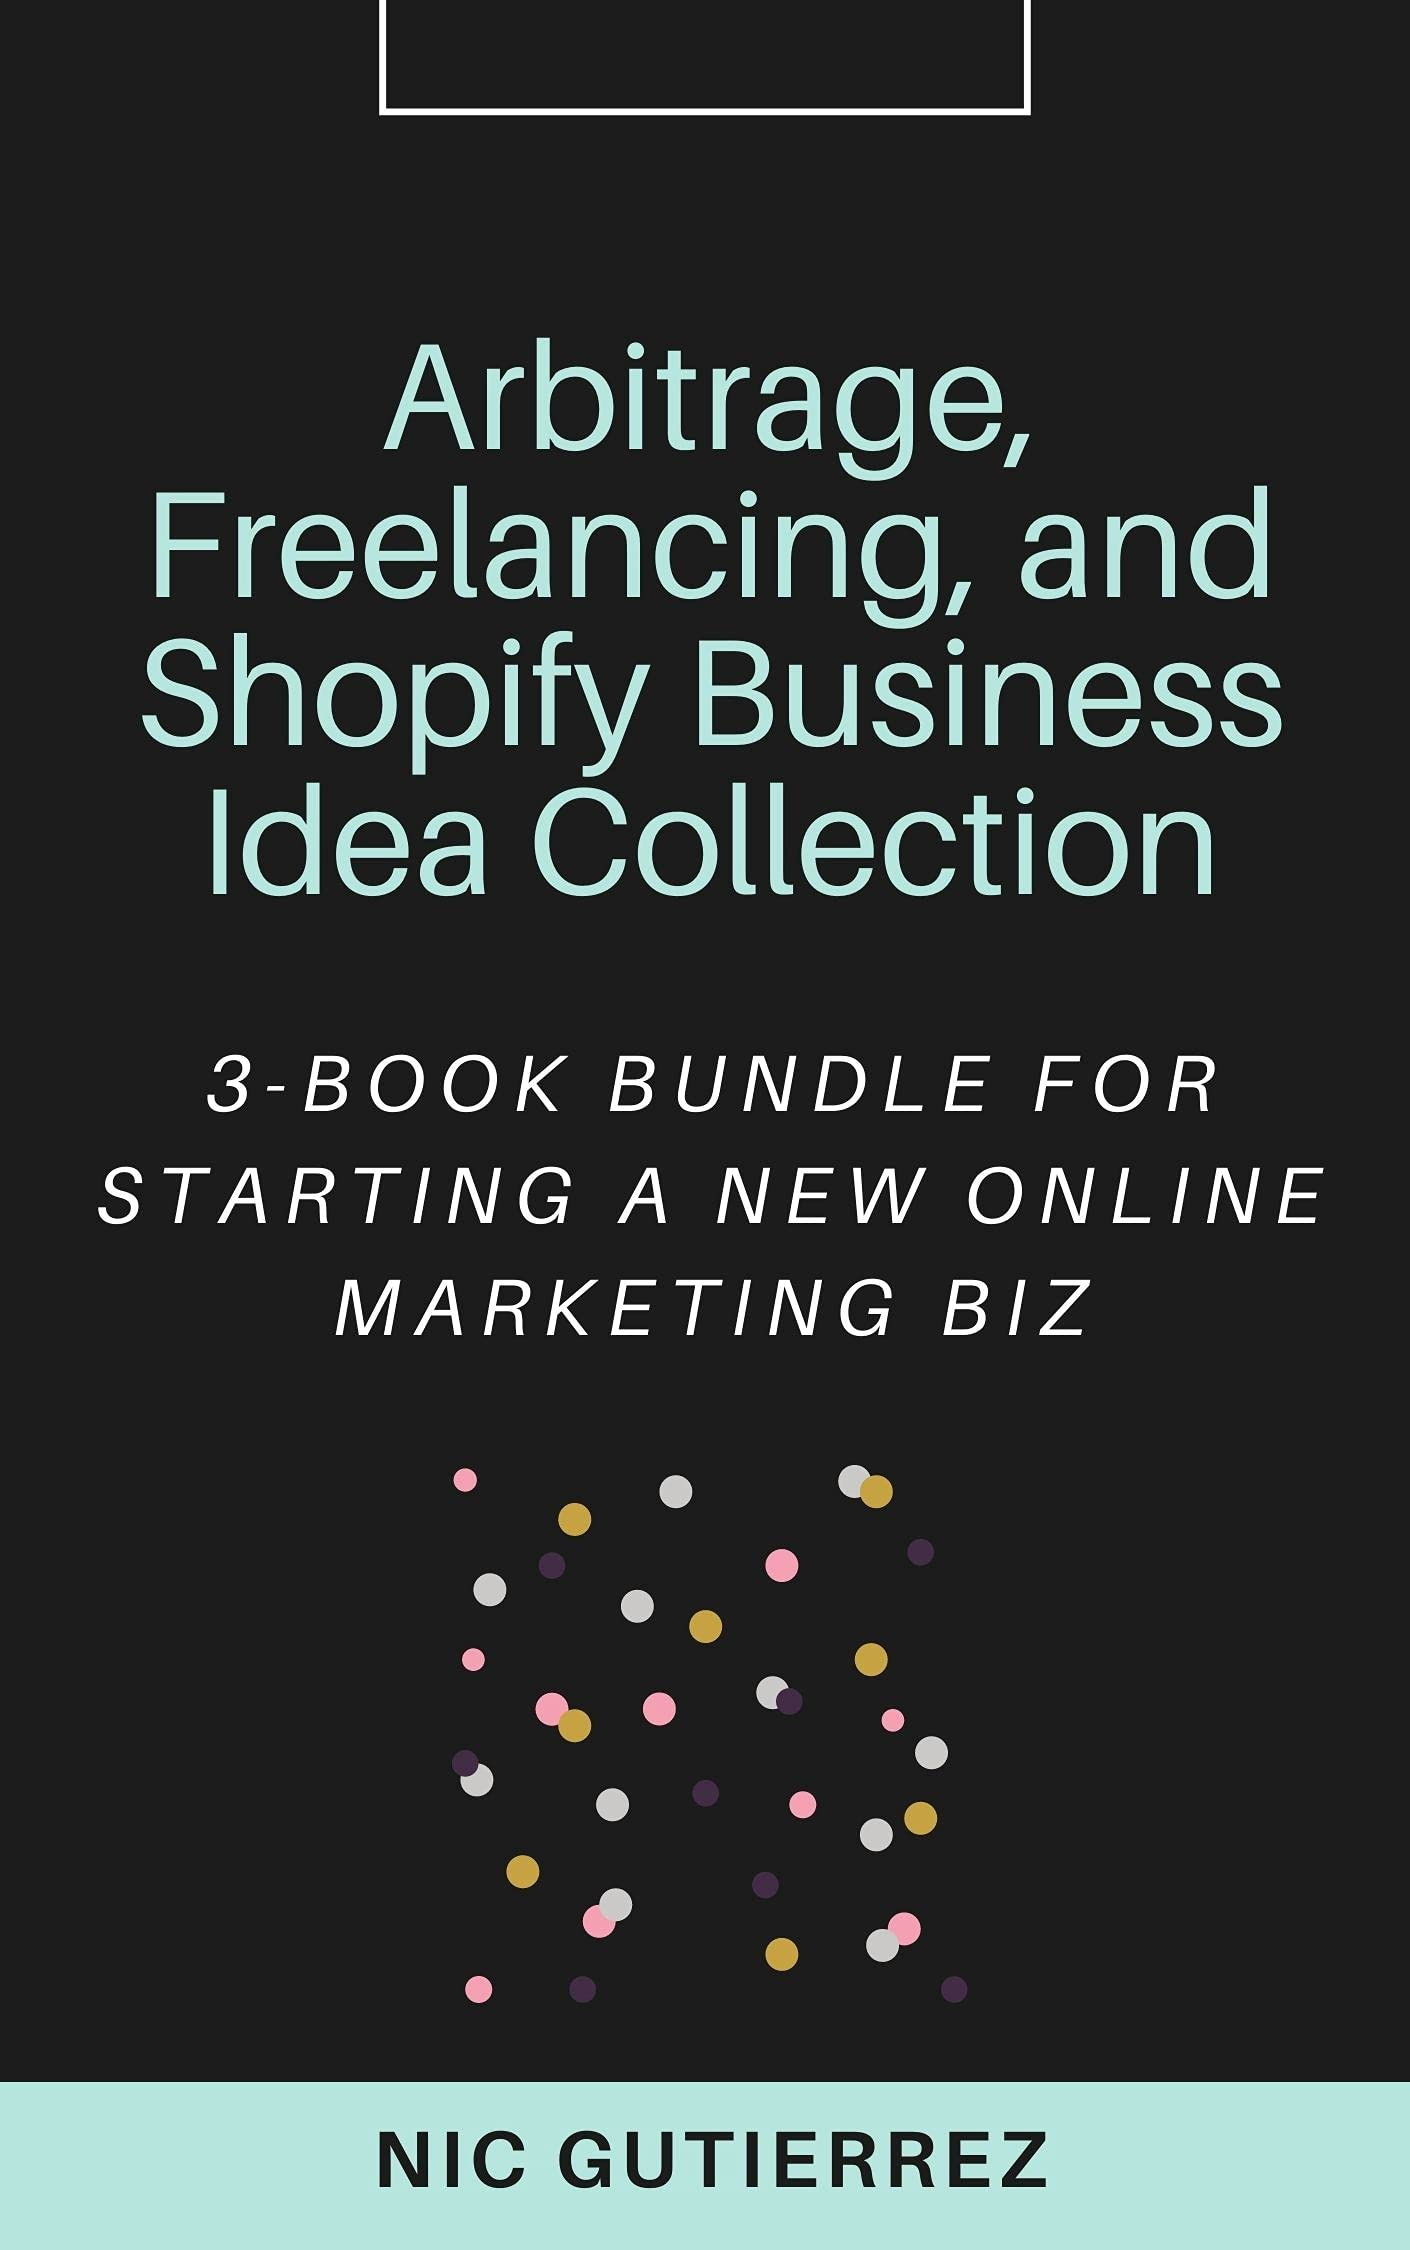 Arbitrage, Freelancing, and Shopify Business Idea Collection: 3-Book Bundle for Starting a New Online Marketing Biz